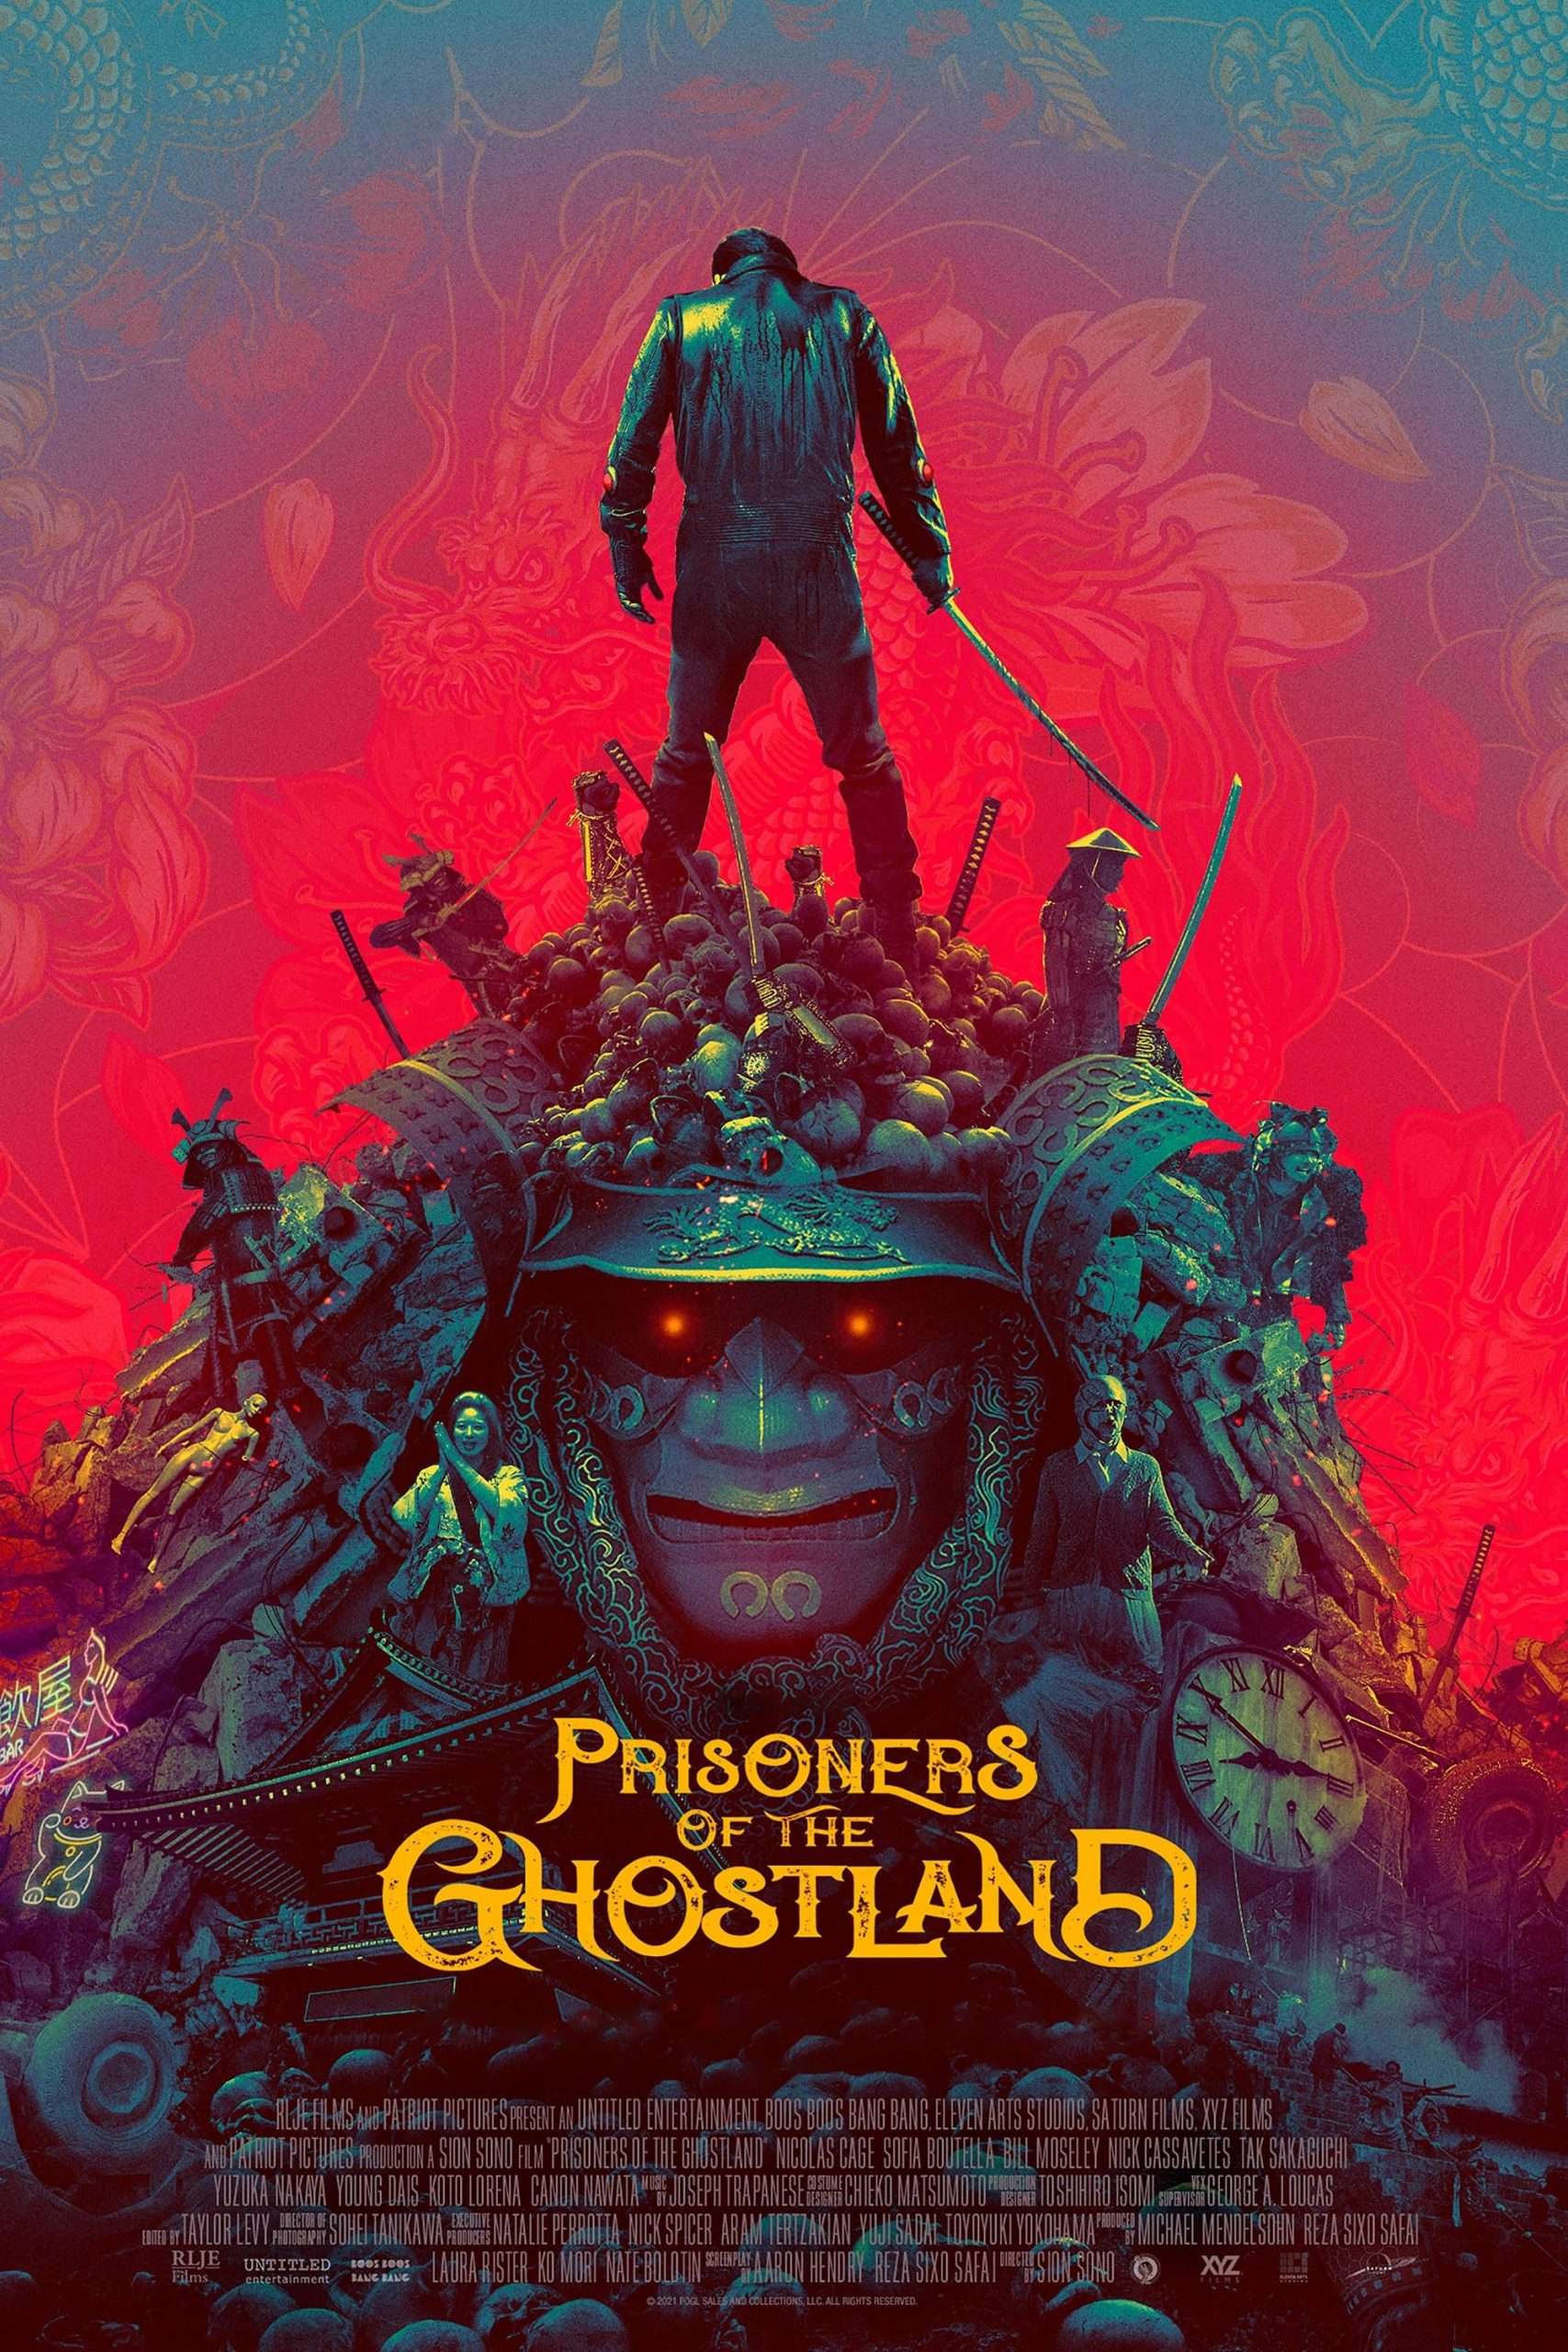 Poster for Prisoners of the Ghostland